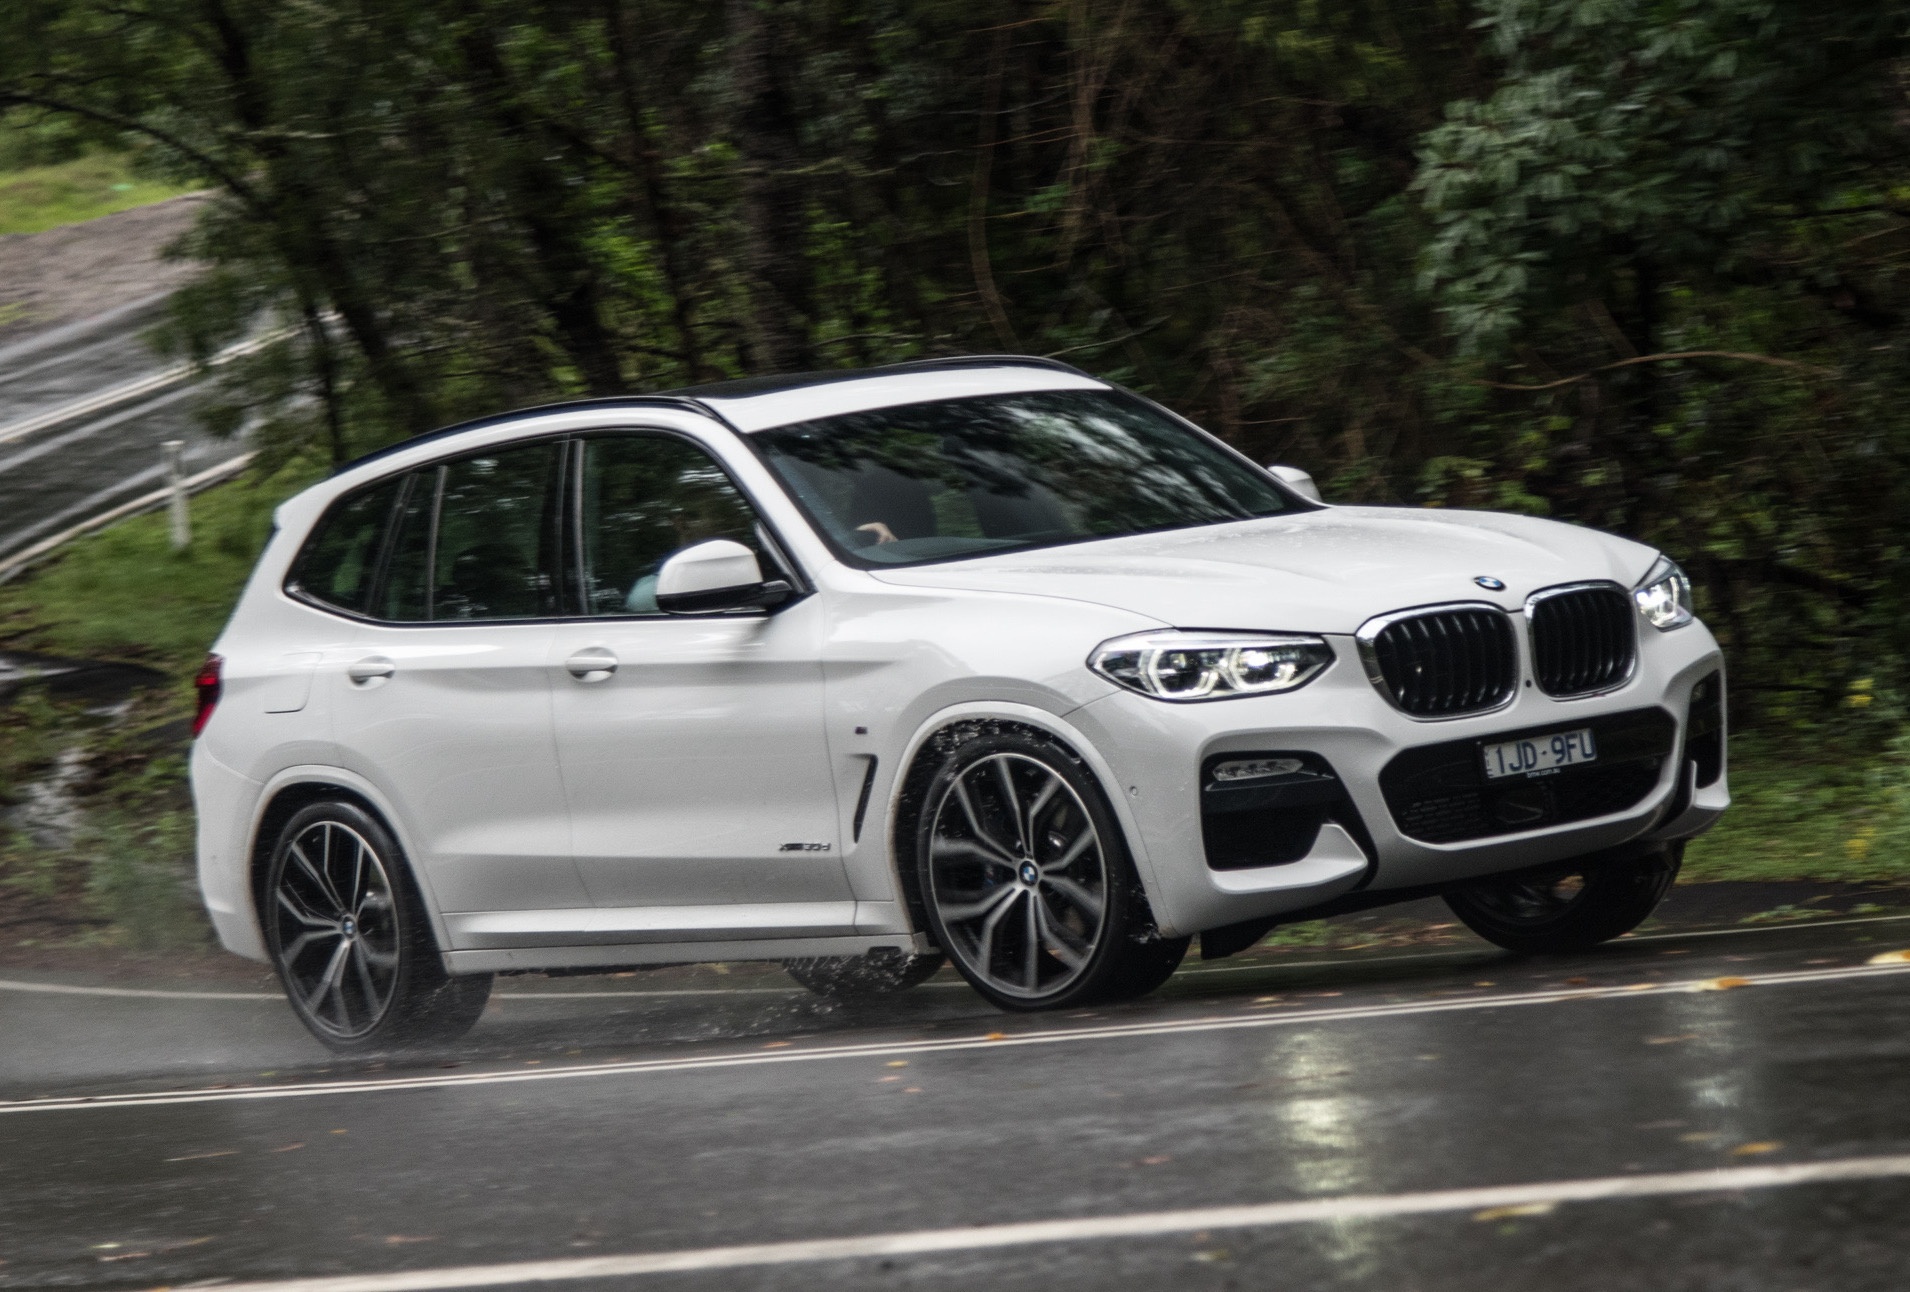 2018 Bmw X3 Xdrive30d Review Video Performancedrive